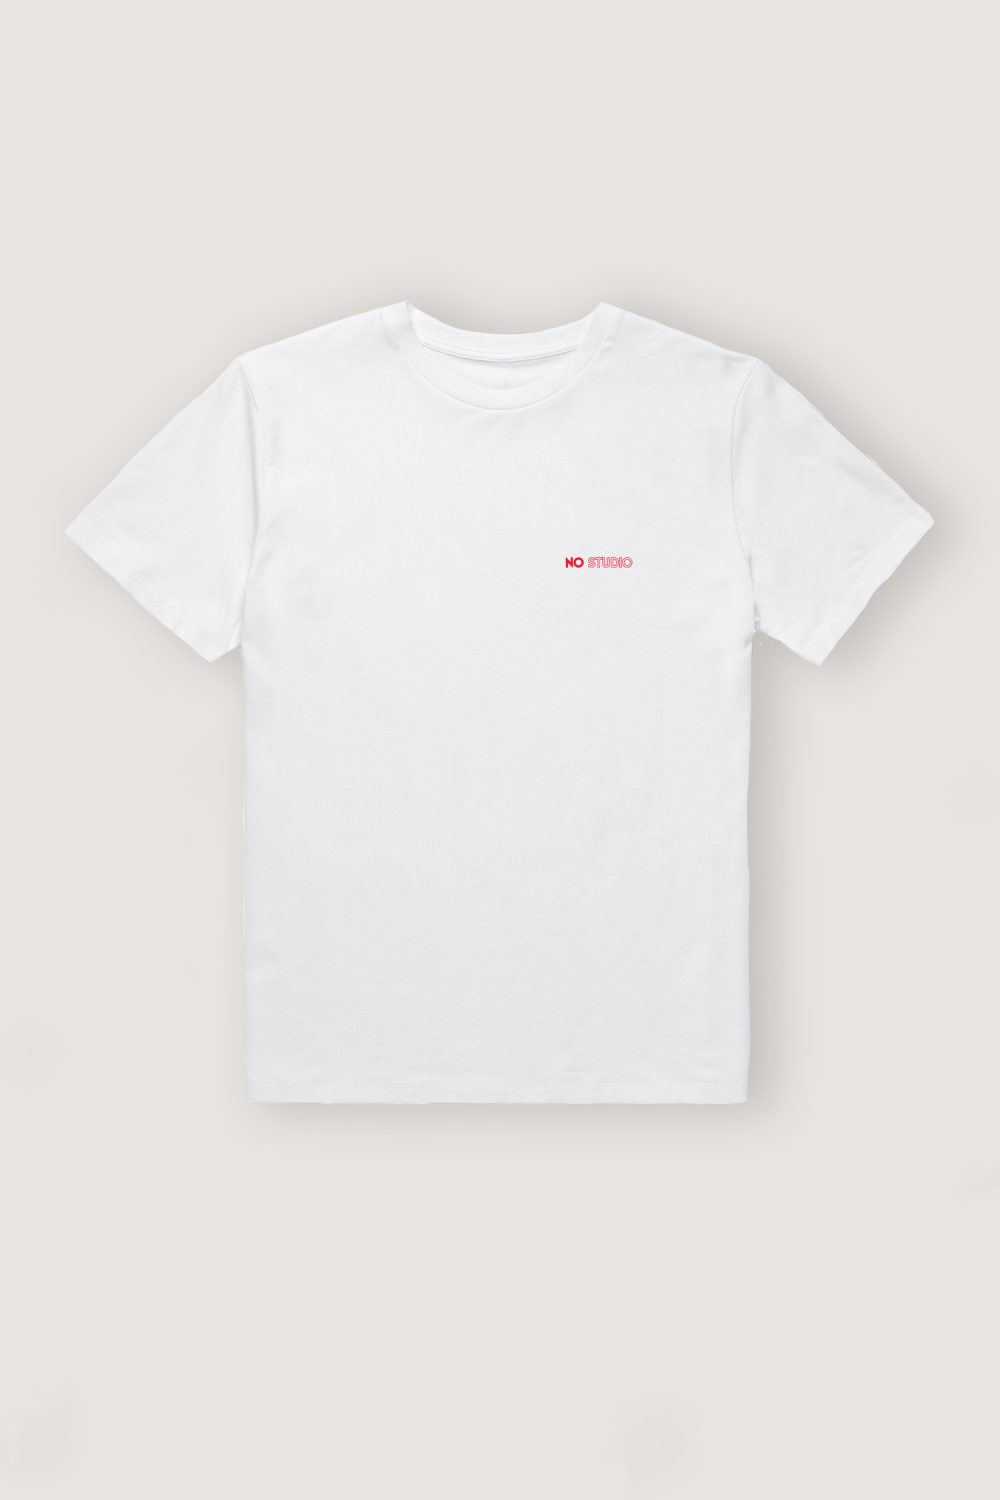 T-Shirt Outlined 2